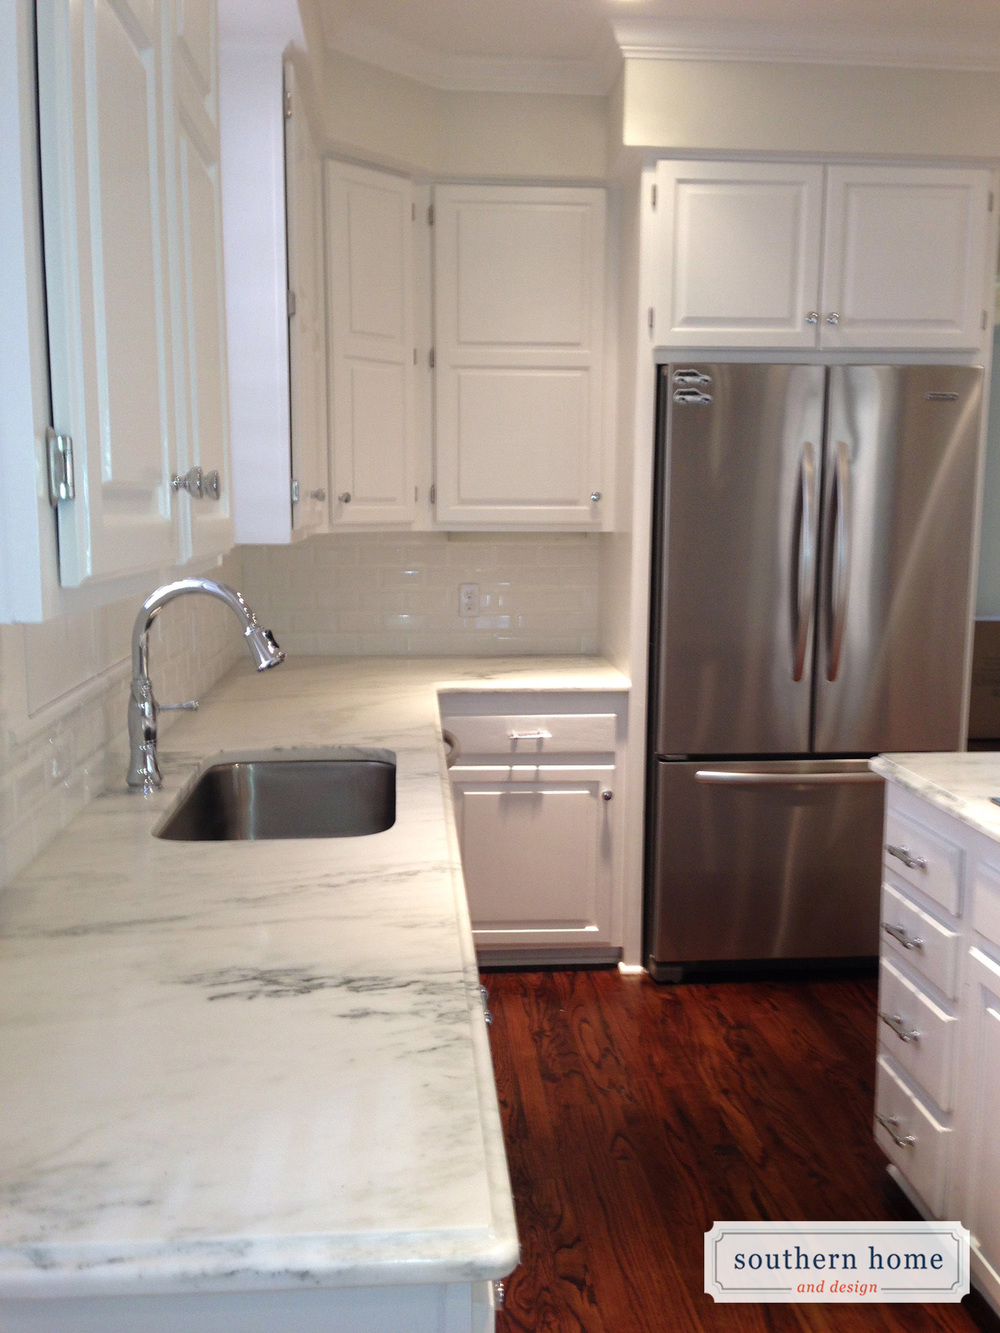 Updated University Park kitchen with white raised panel cabinets, exposed hinges, honed Danby marble countertops, wood floors, stainless steel appliances.